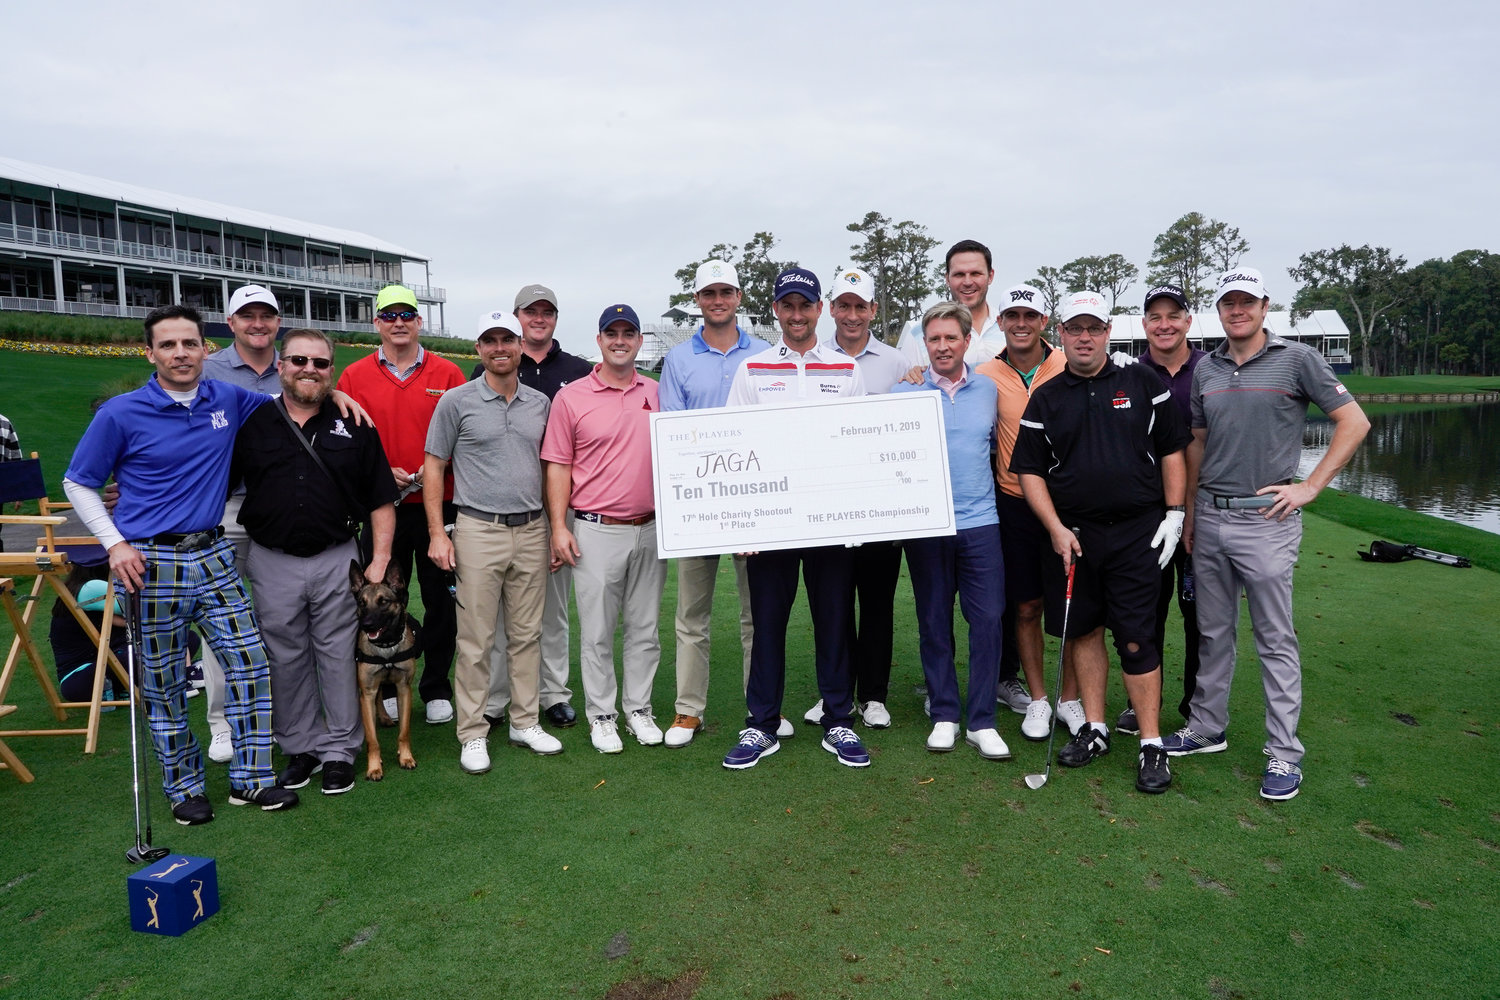 THE PLAYERS 2018 champion Webb Simpson gathers with participants of THE PLAYERS Charity Challenge on Monday at TPC Sawgrass. Simpson helped Davis Roche win the event and claim the $10,000 first-place prize for the JAGA Scholarship Trust.